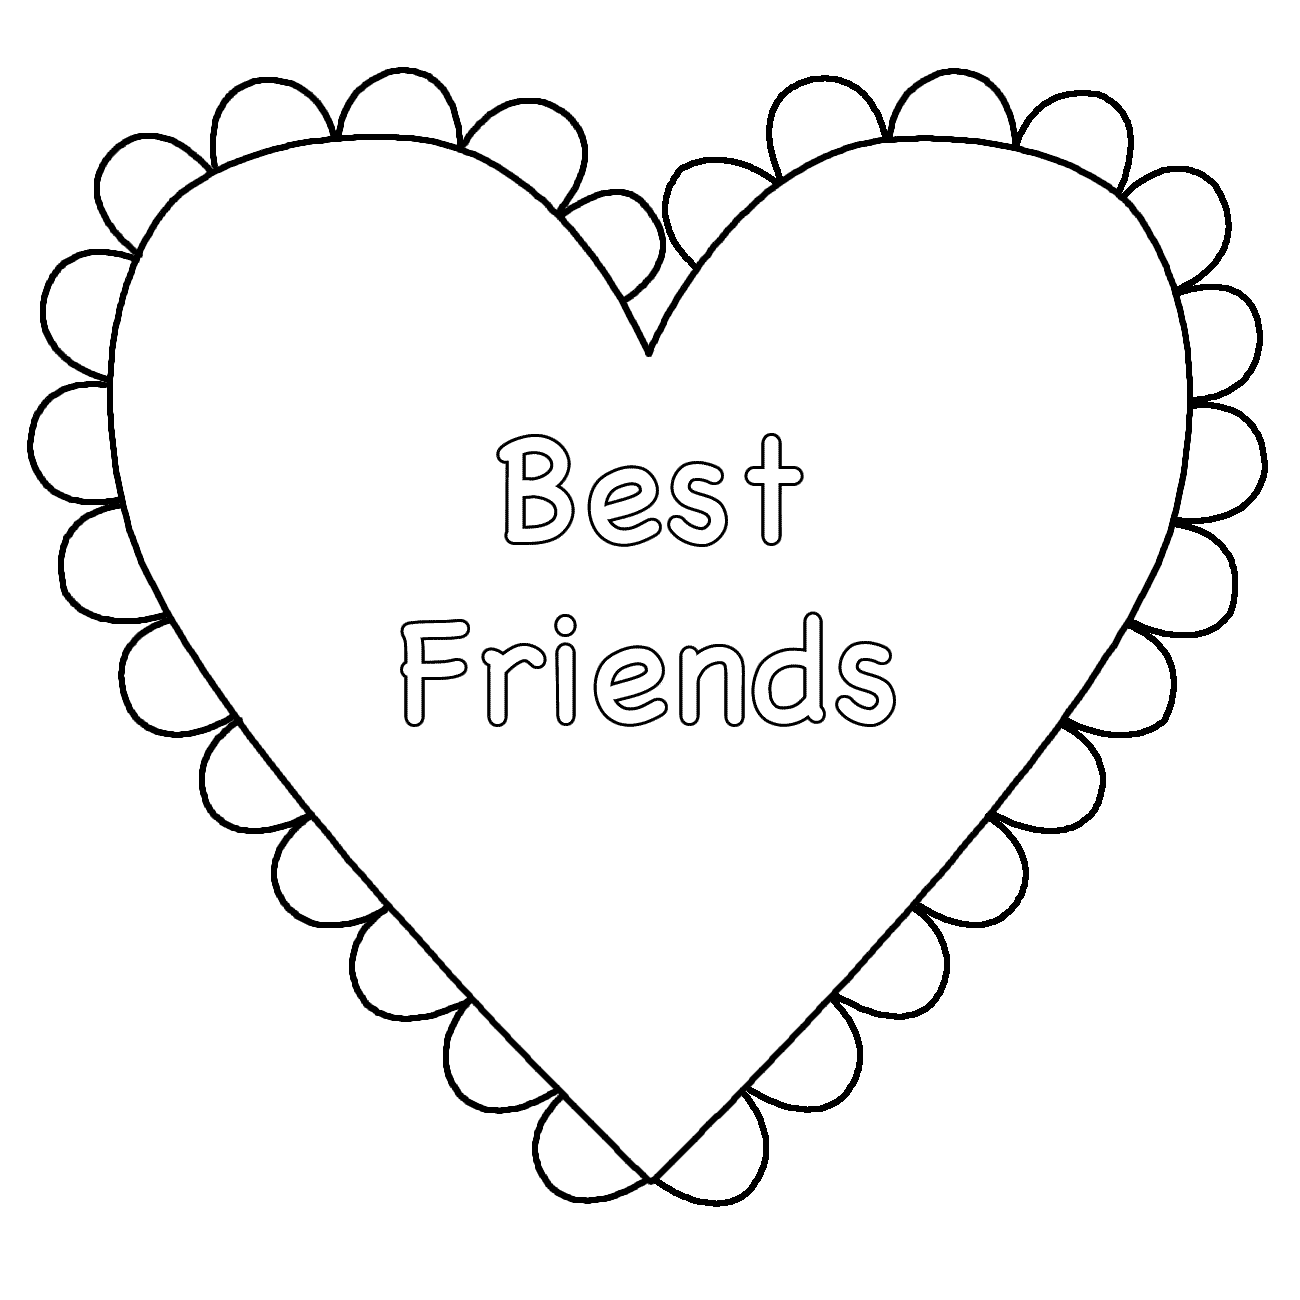 best friend coloring pages | Heart (Best Friends) - Coloring Pages ...